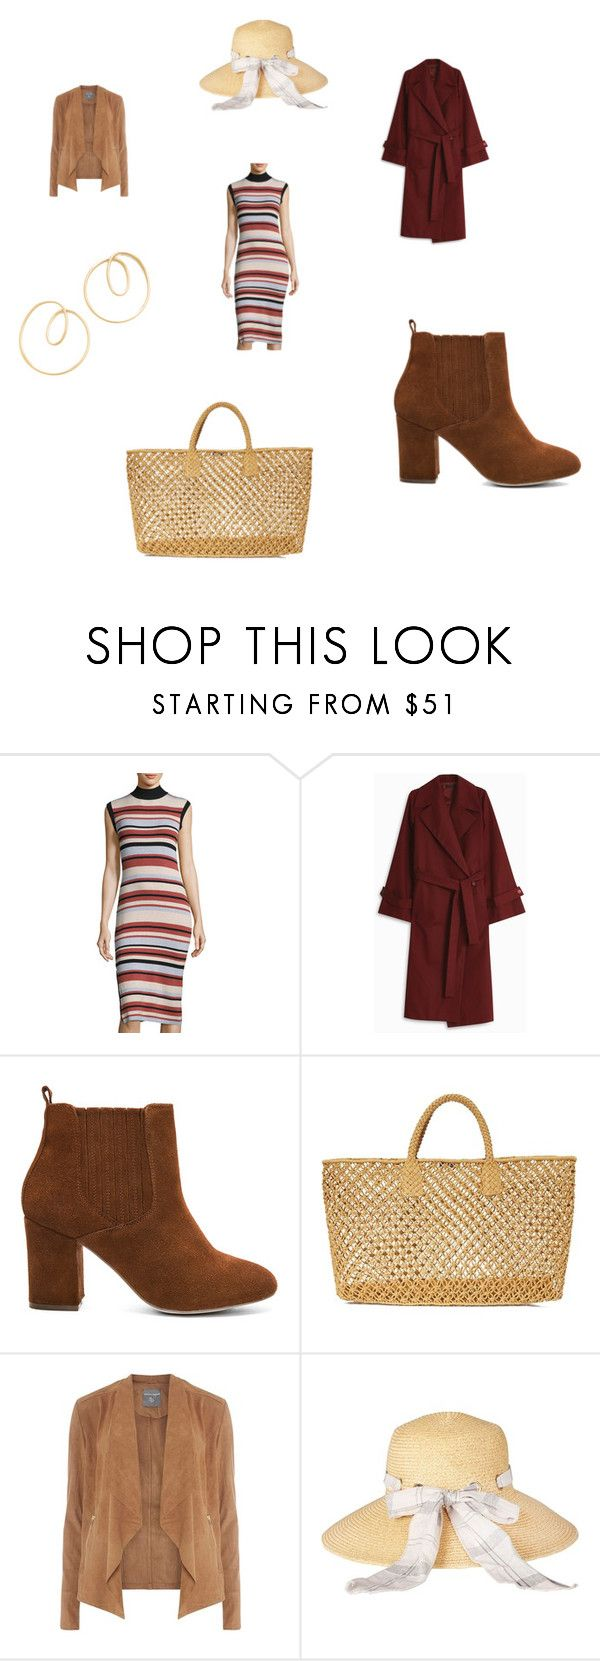 """""""outfit"""" by jamuna-kaalla ❤ liked on Polyvore featuring MINKPINK, The Row, Steve Madden, Hat Attack, Dorothy Perkins, Barbour and Amber Sceats"""